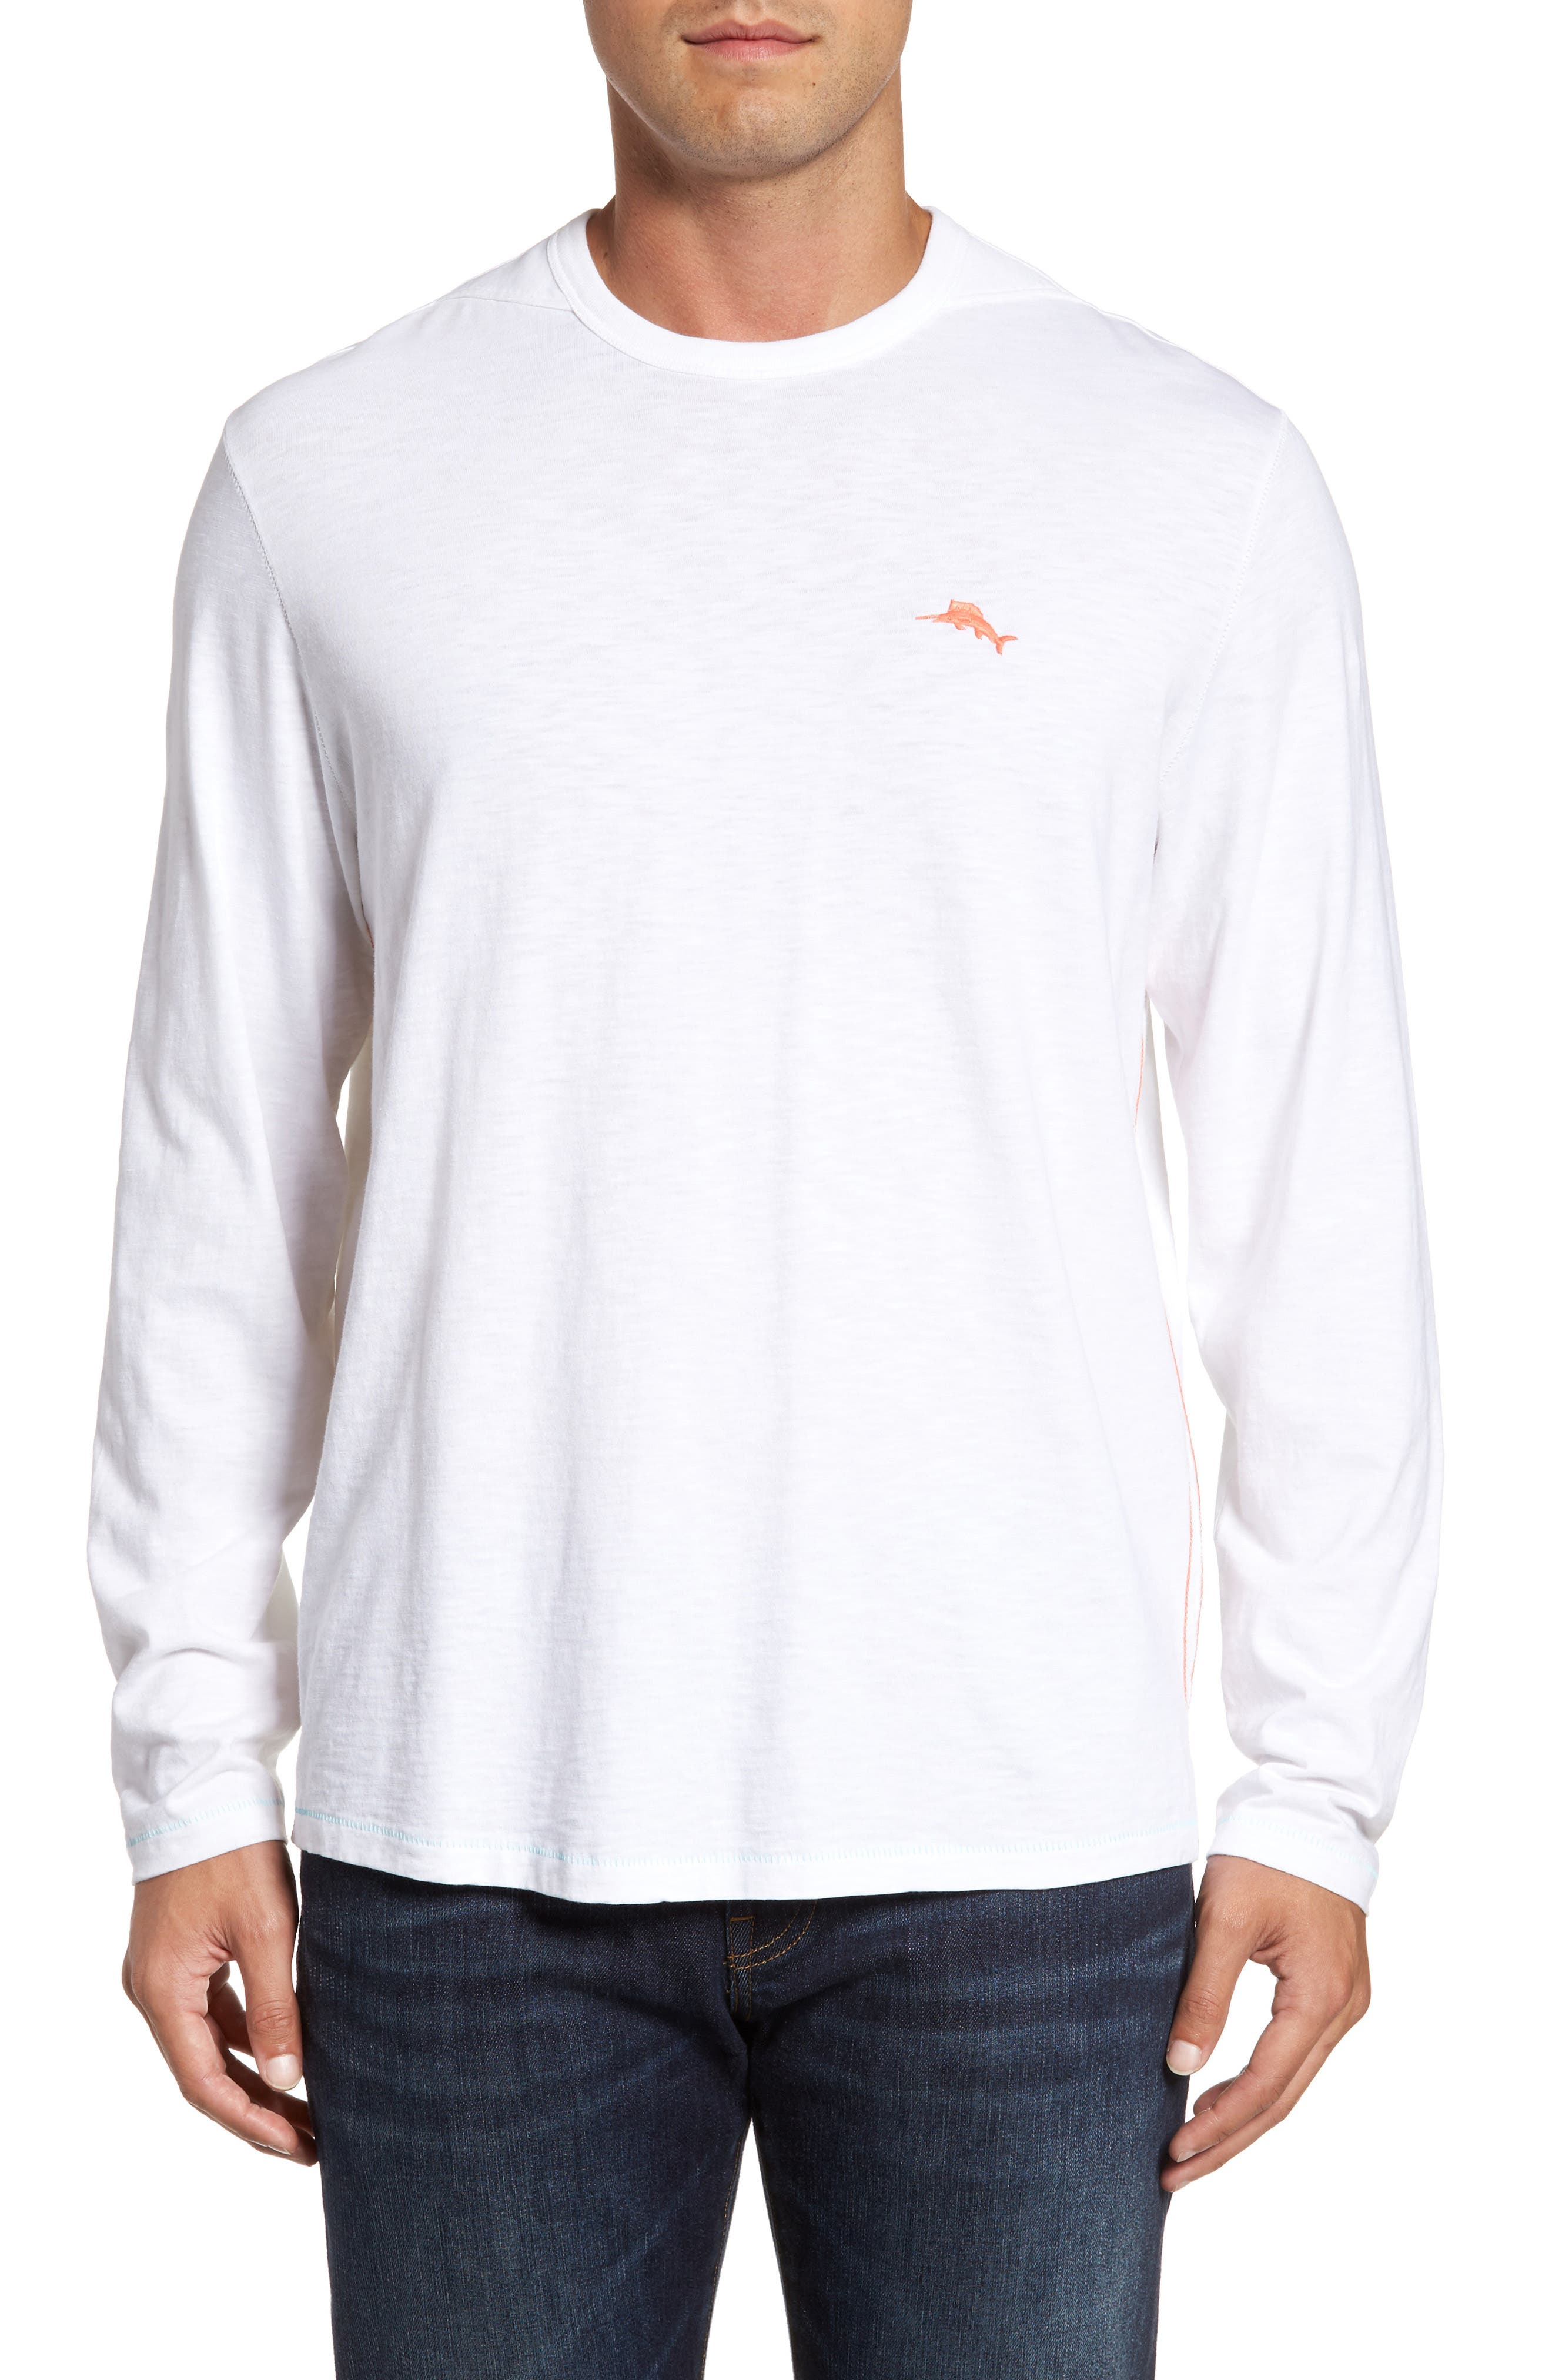 Relax at Sea Lux T-Shirt,                         Main,                         color, 100